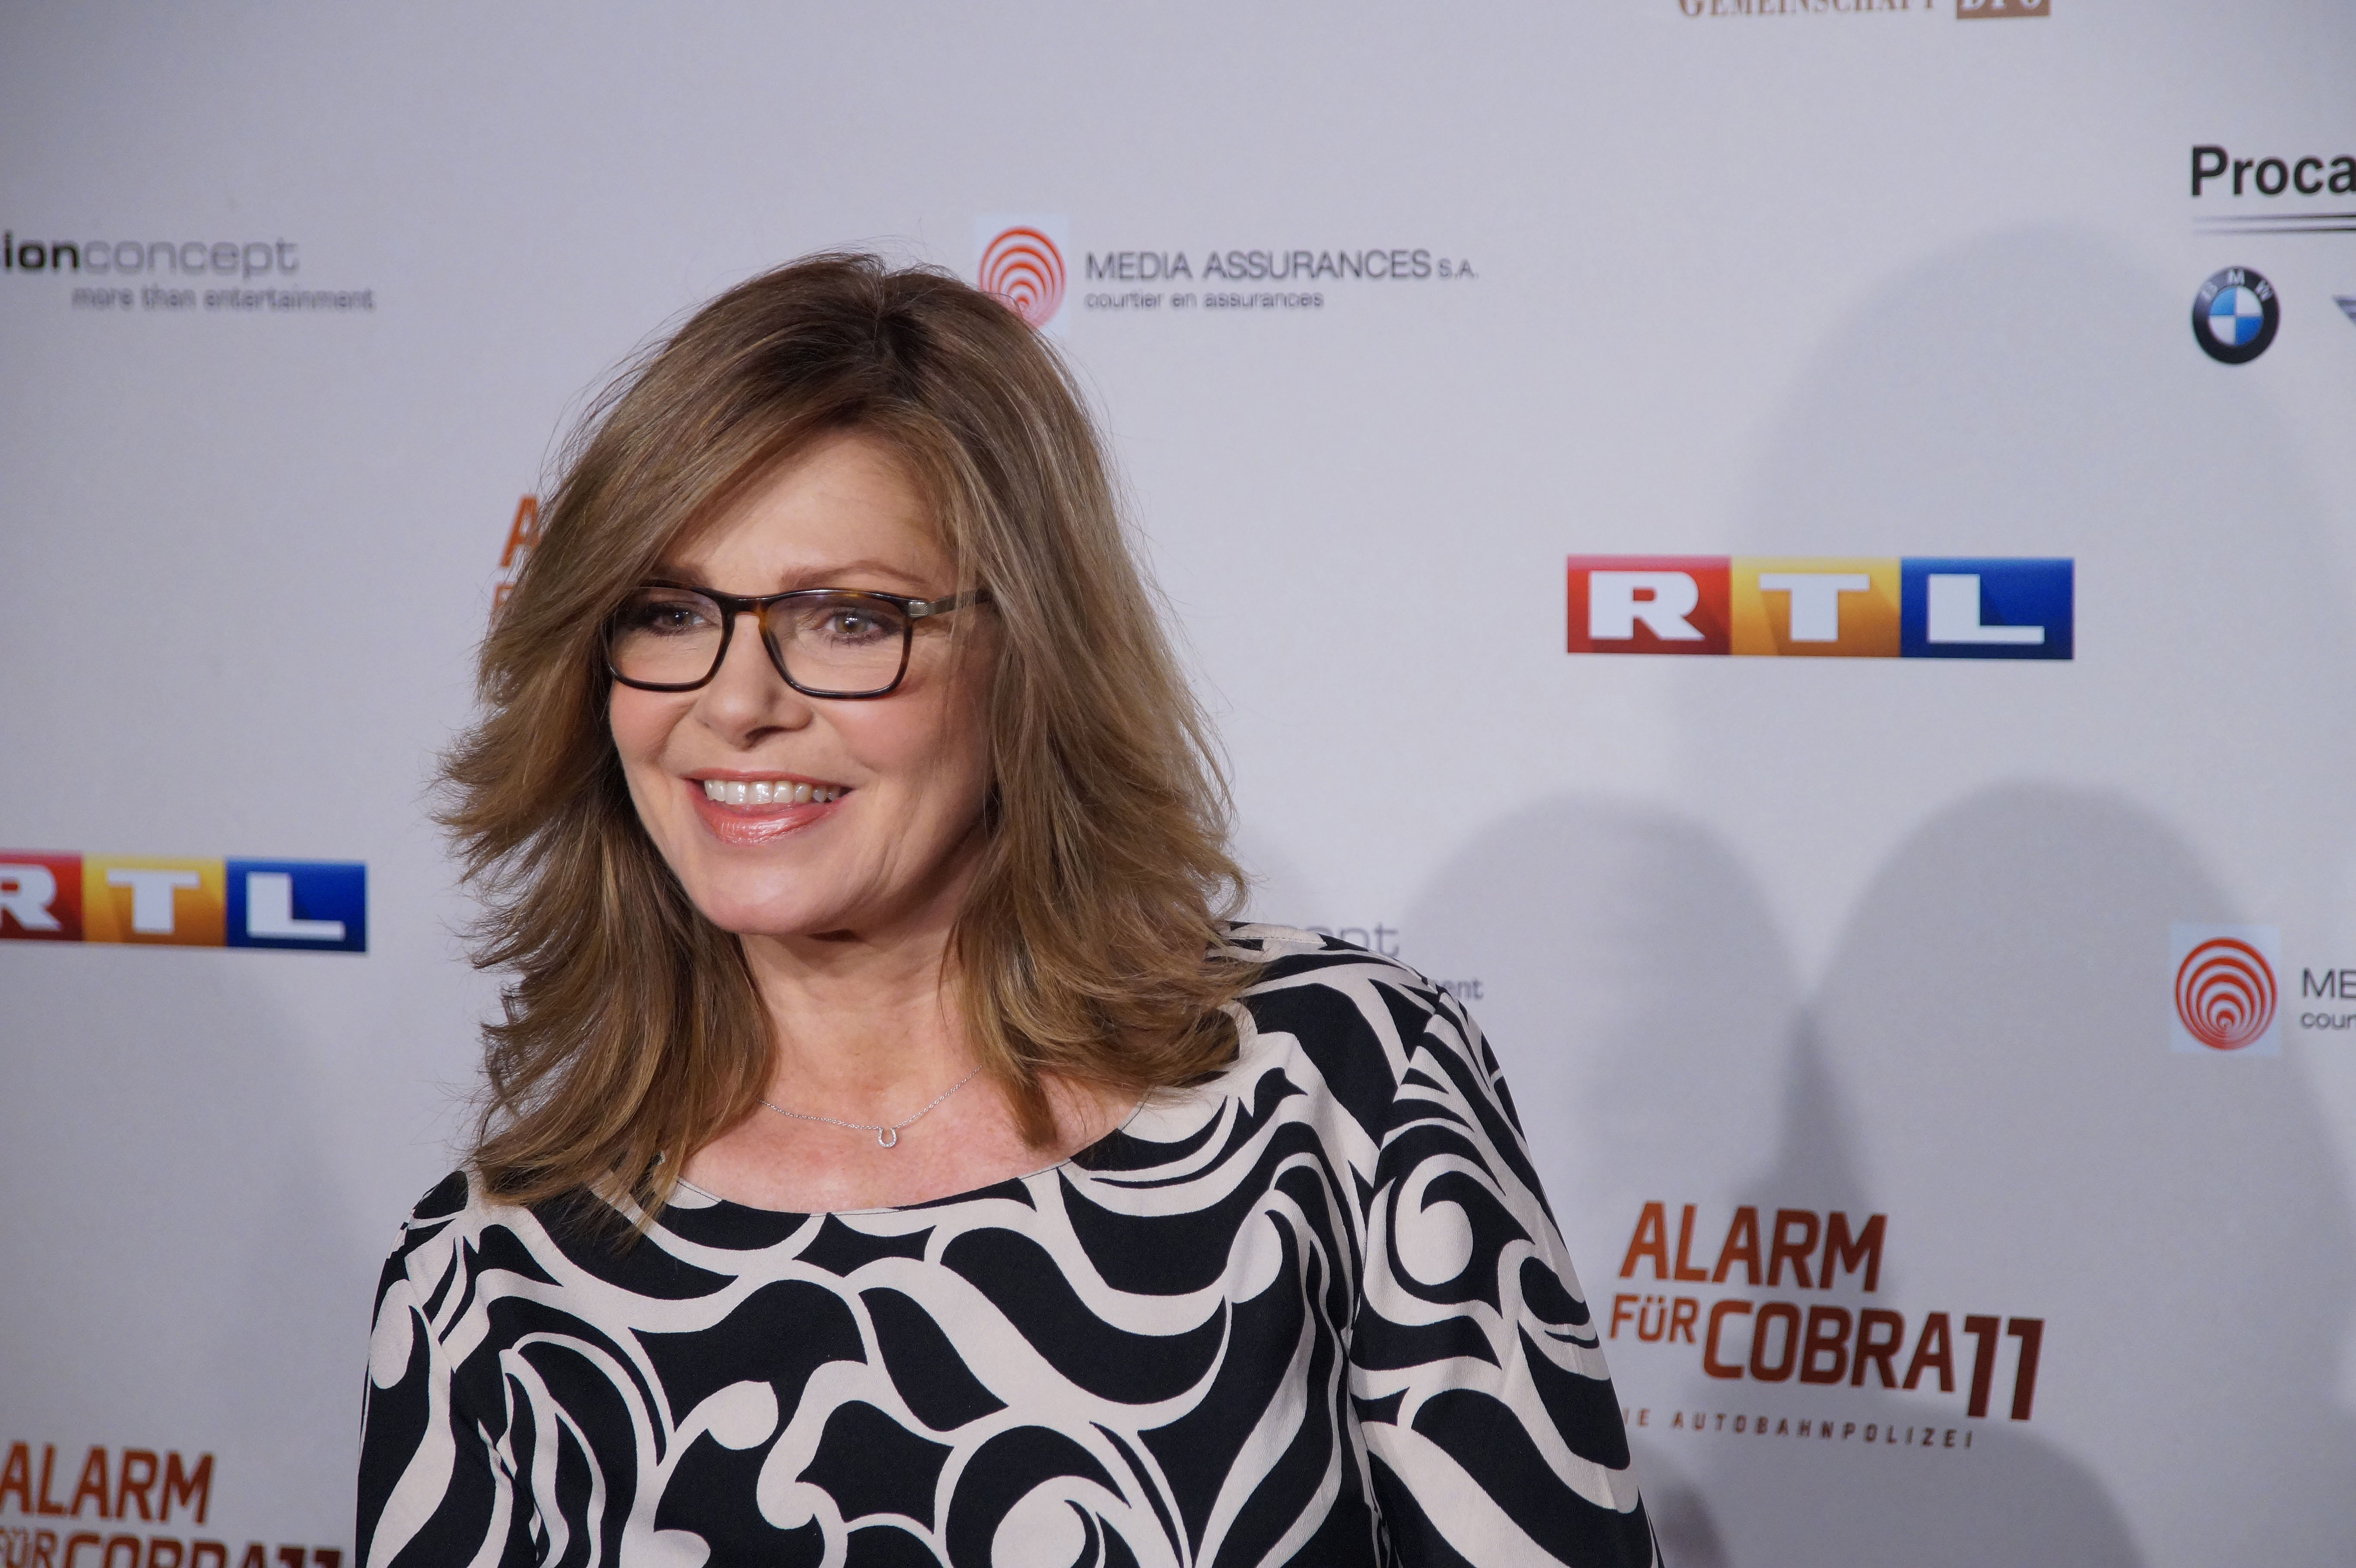 The 58-year old daughter of father (?) and mother(?) Maren Gilzer in 2018 photo. Maren Gilzer earned a  million dollar salary - leaving the net worth at  million in 2018